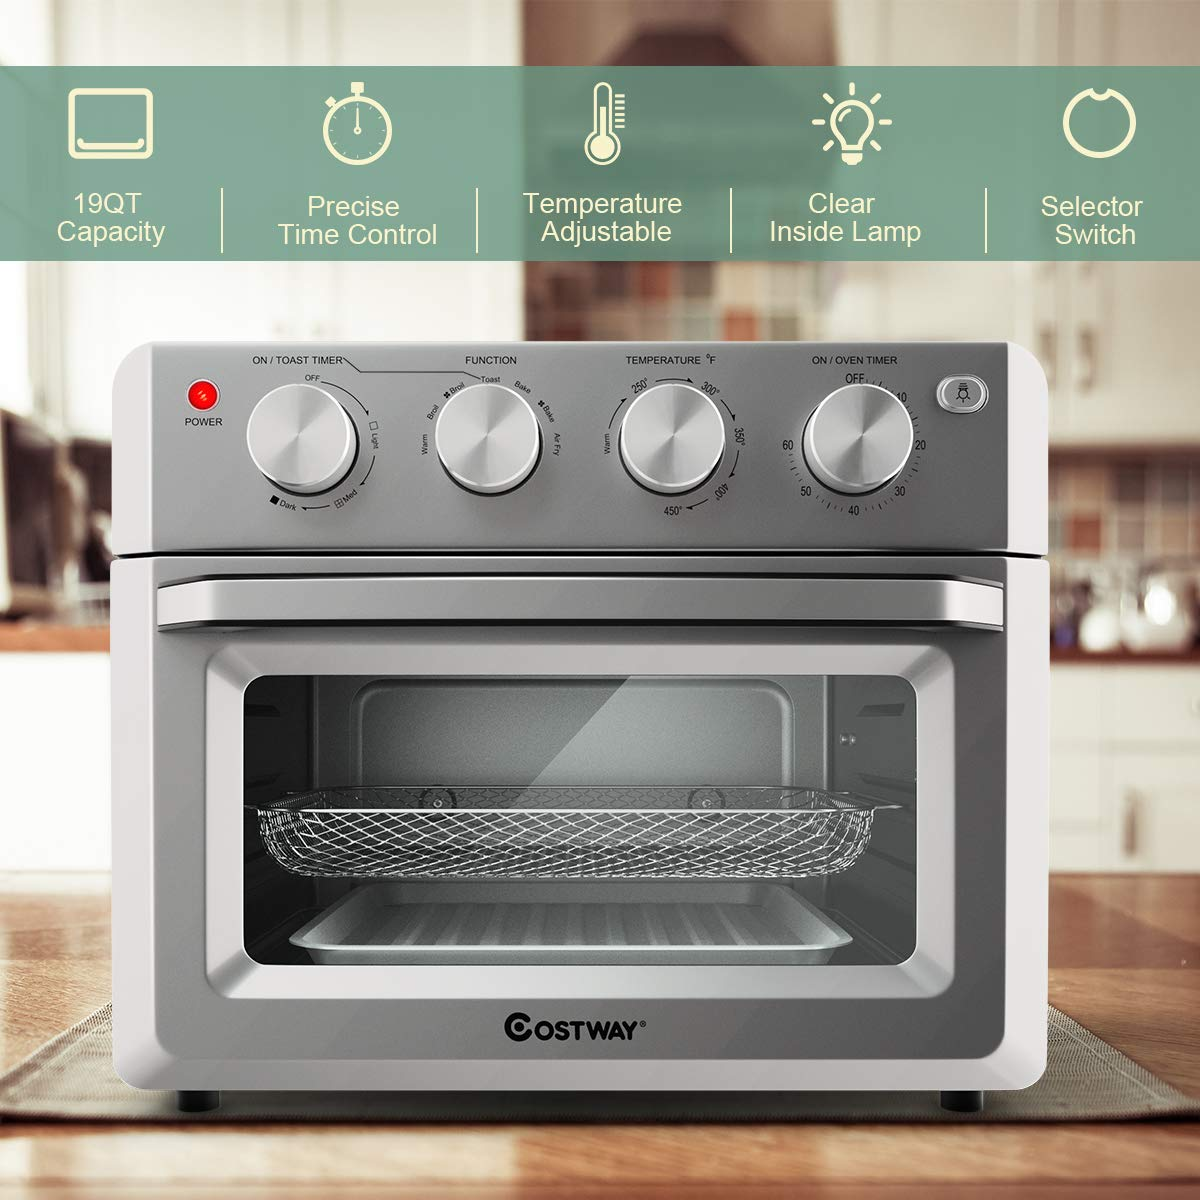 dry-foods-at-home-with-costway-oven